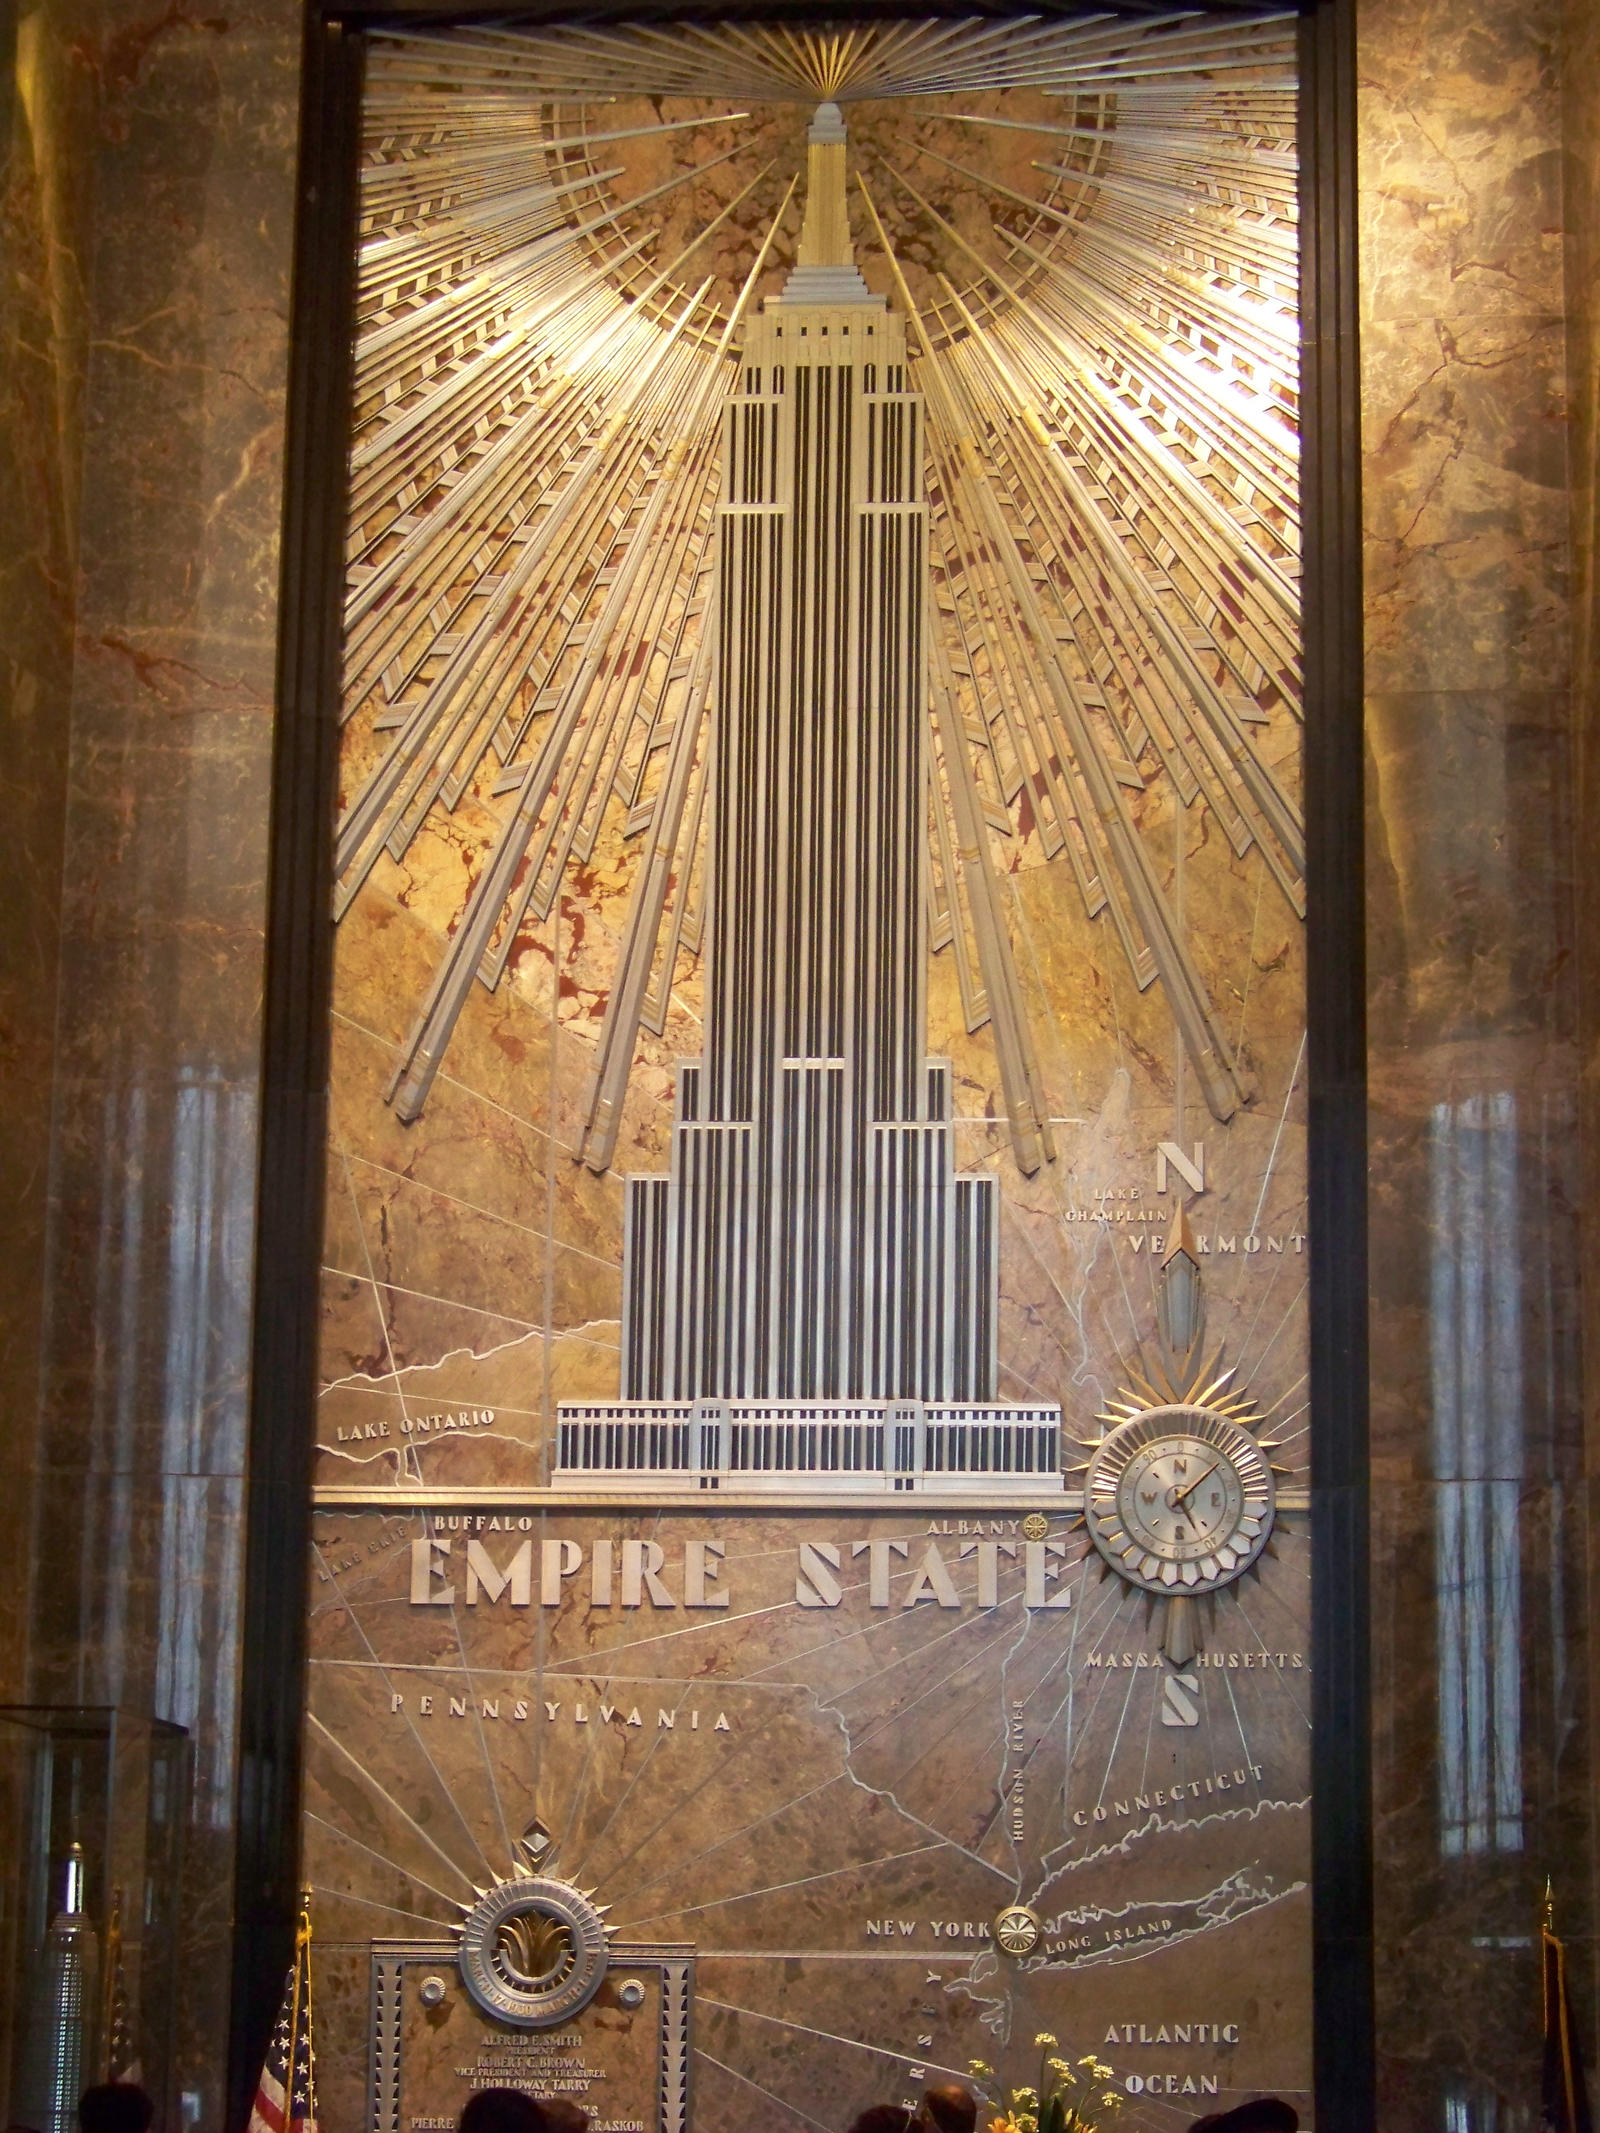 empire_state_building_lobby_by_don82159-